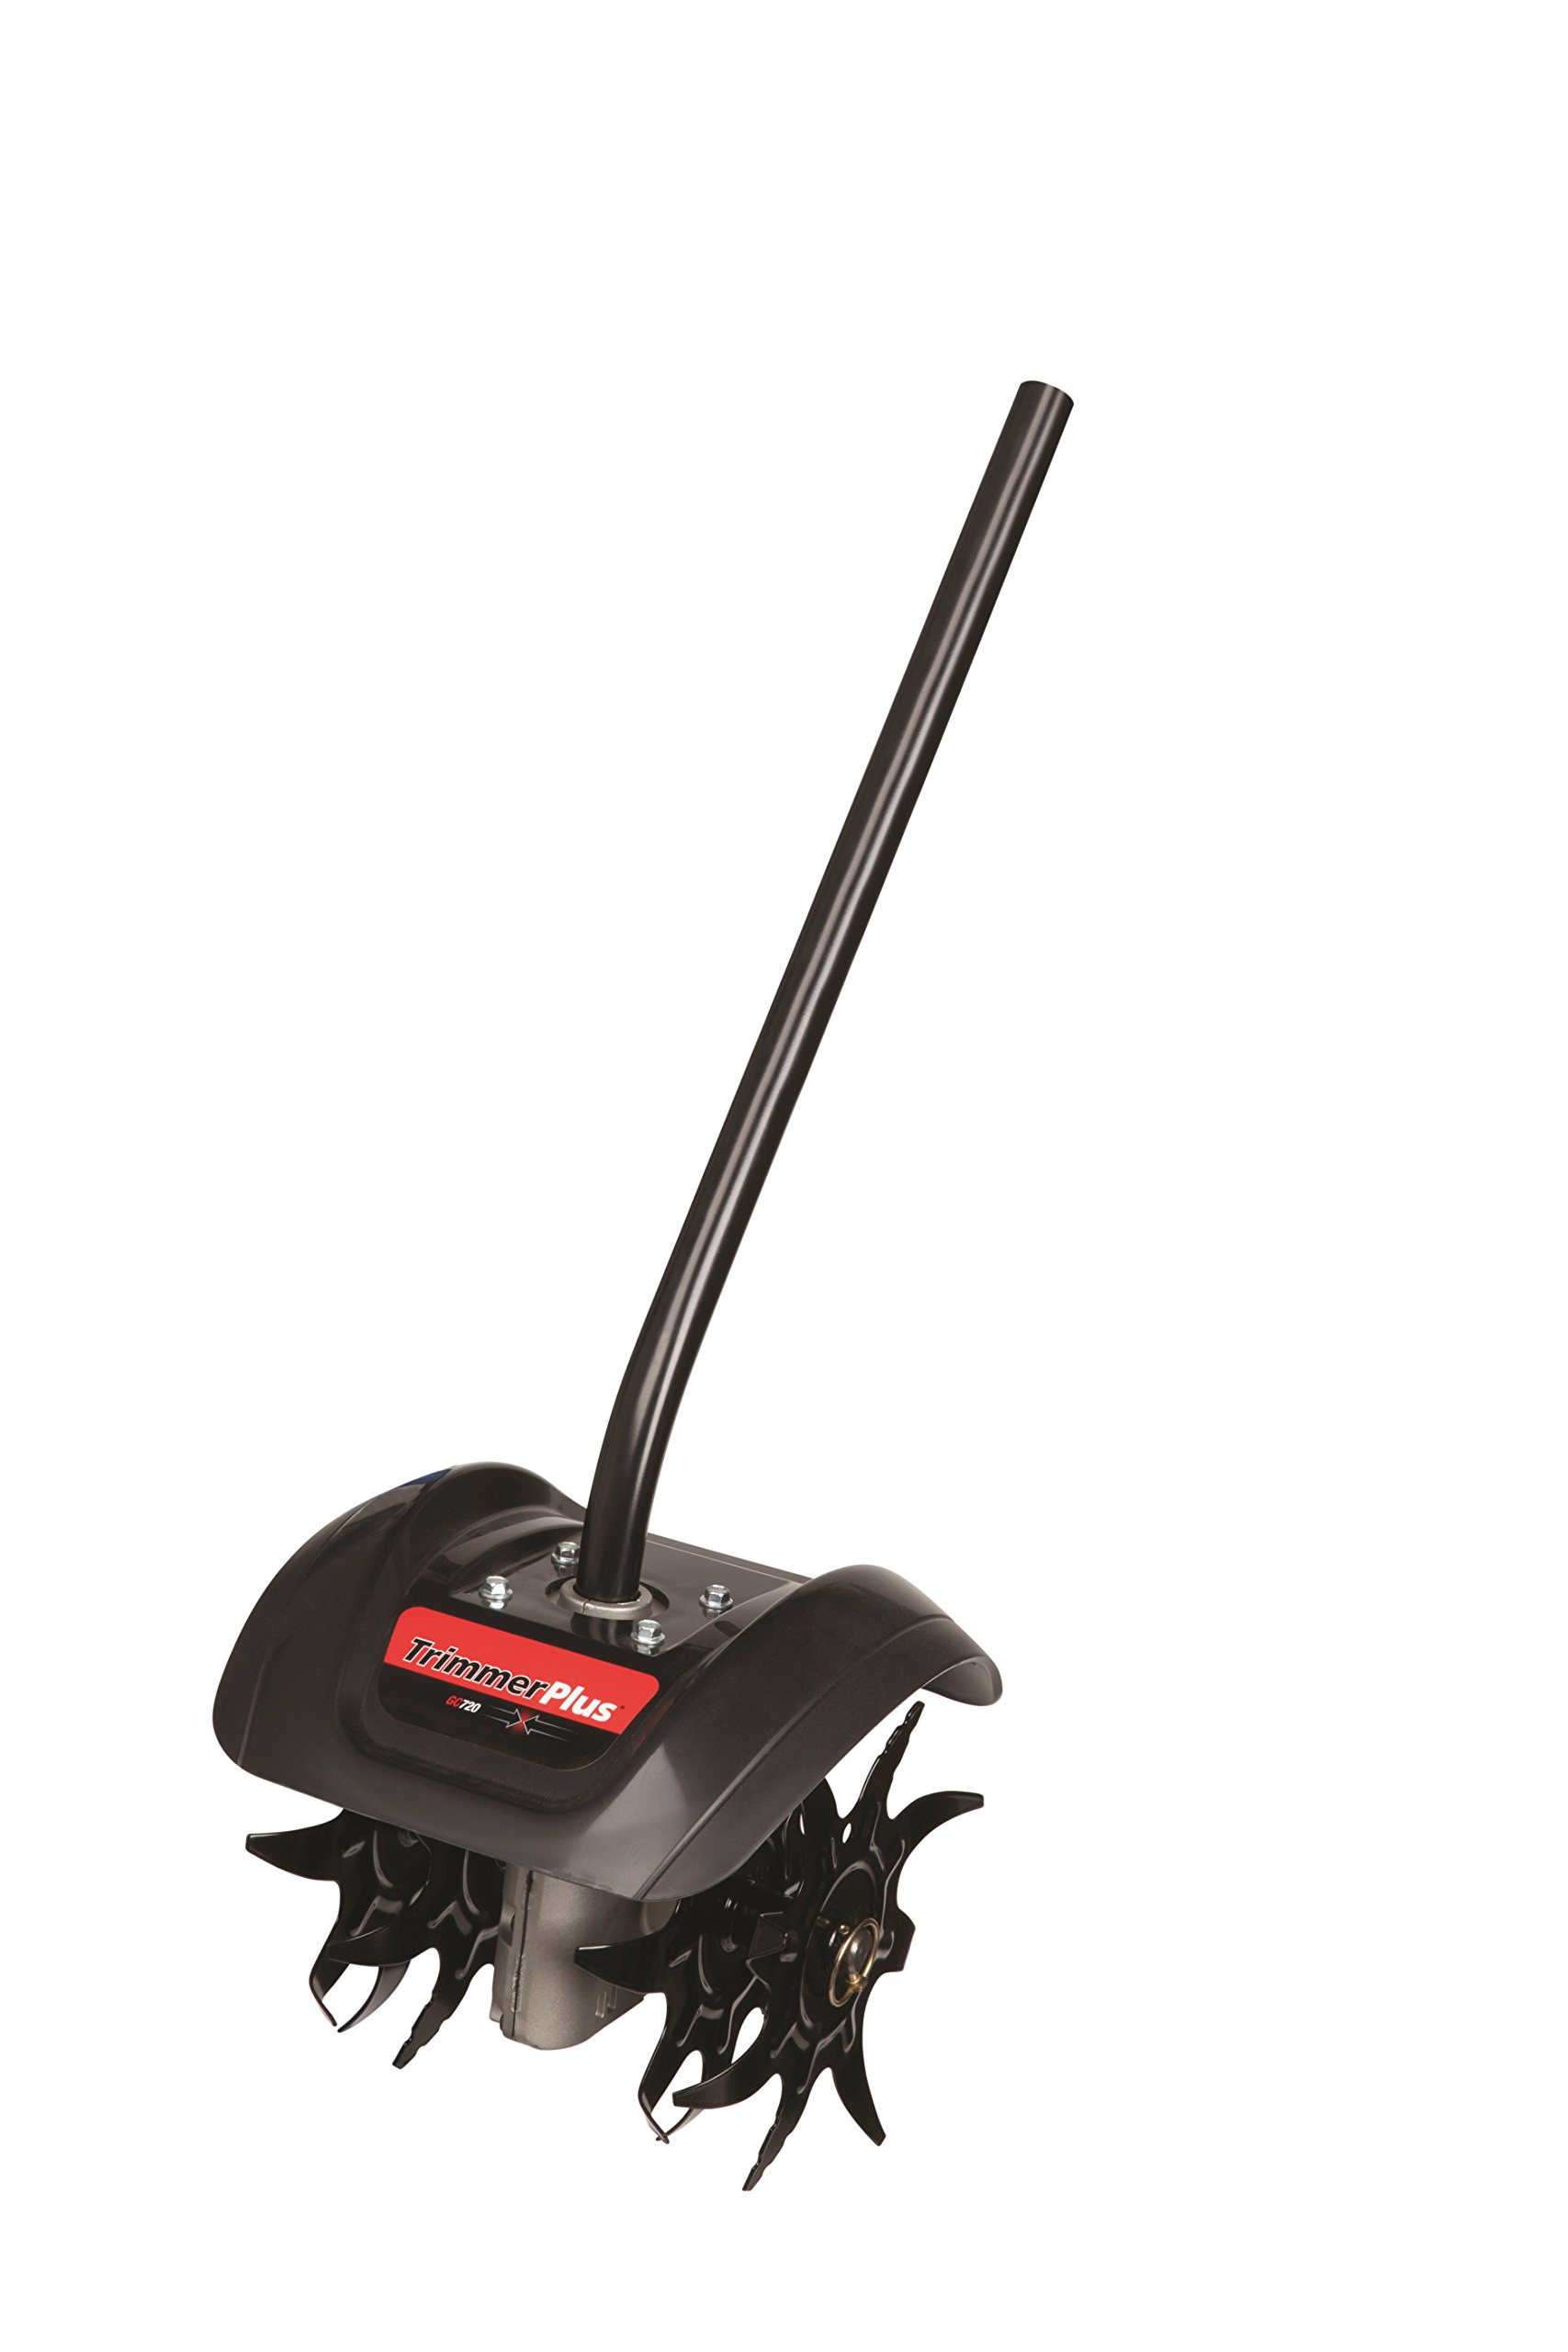 TrimmerPlus GC720 Garden Cultivator Attachment with Four Premium Tines for Attachment Capable String Trimmers, Polesaws, and Powerheads by Trimmer Plus